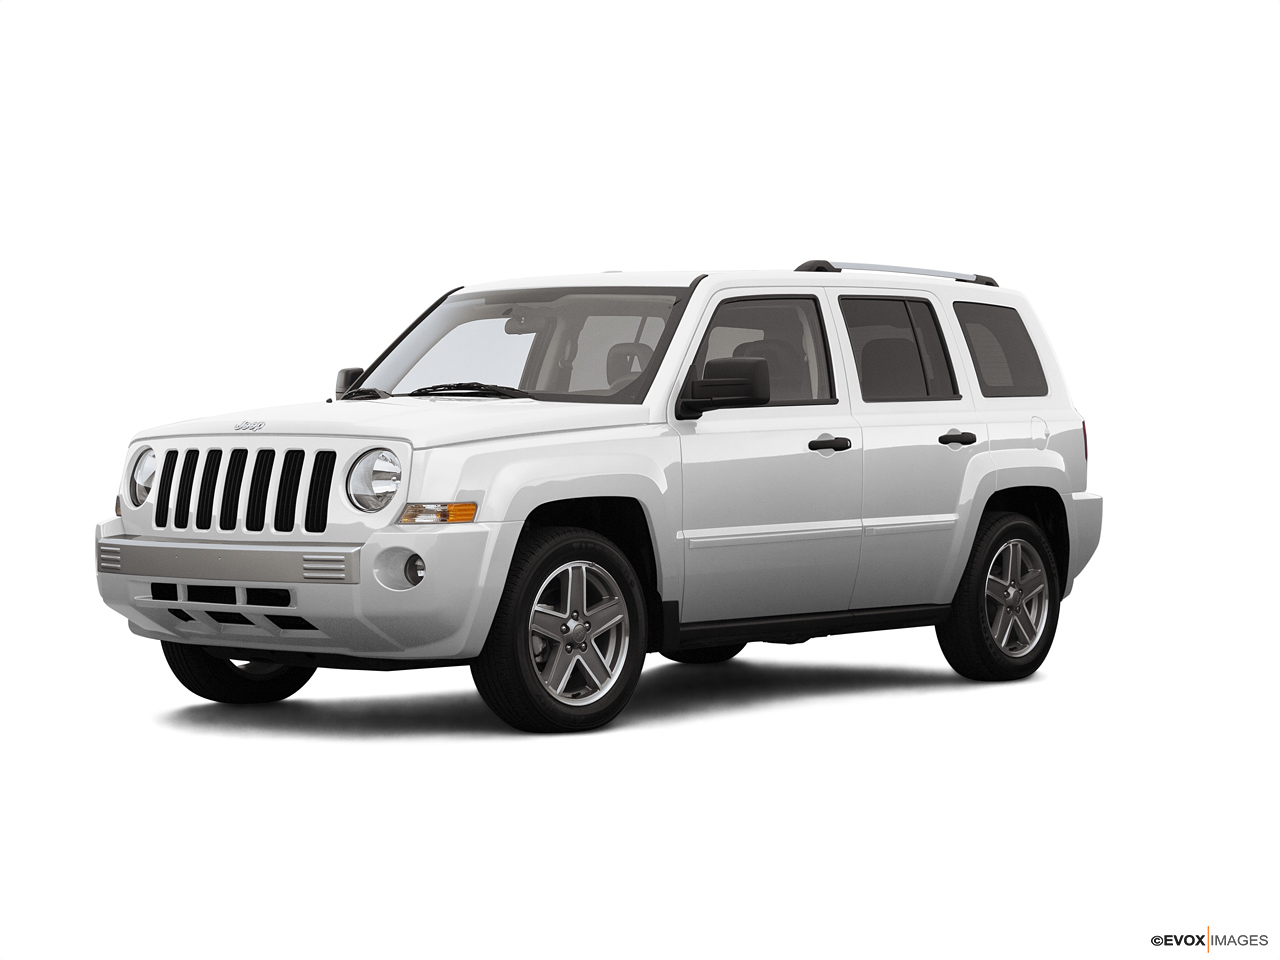 hight resolution of jeep service by top rated mechanics at the convenience of your home or office